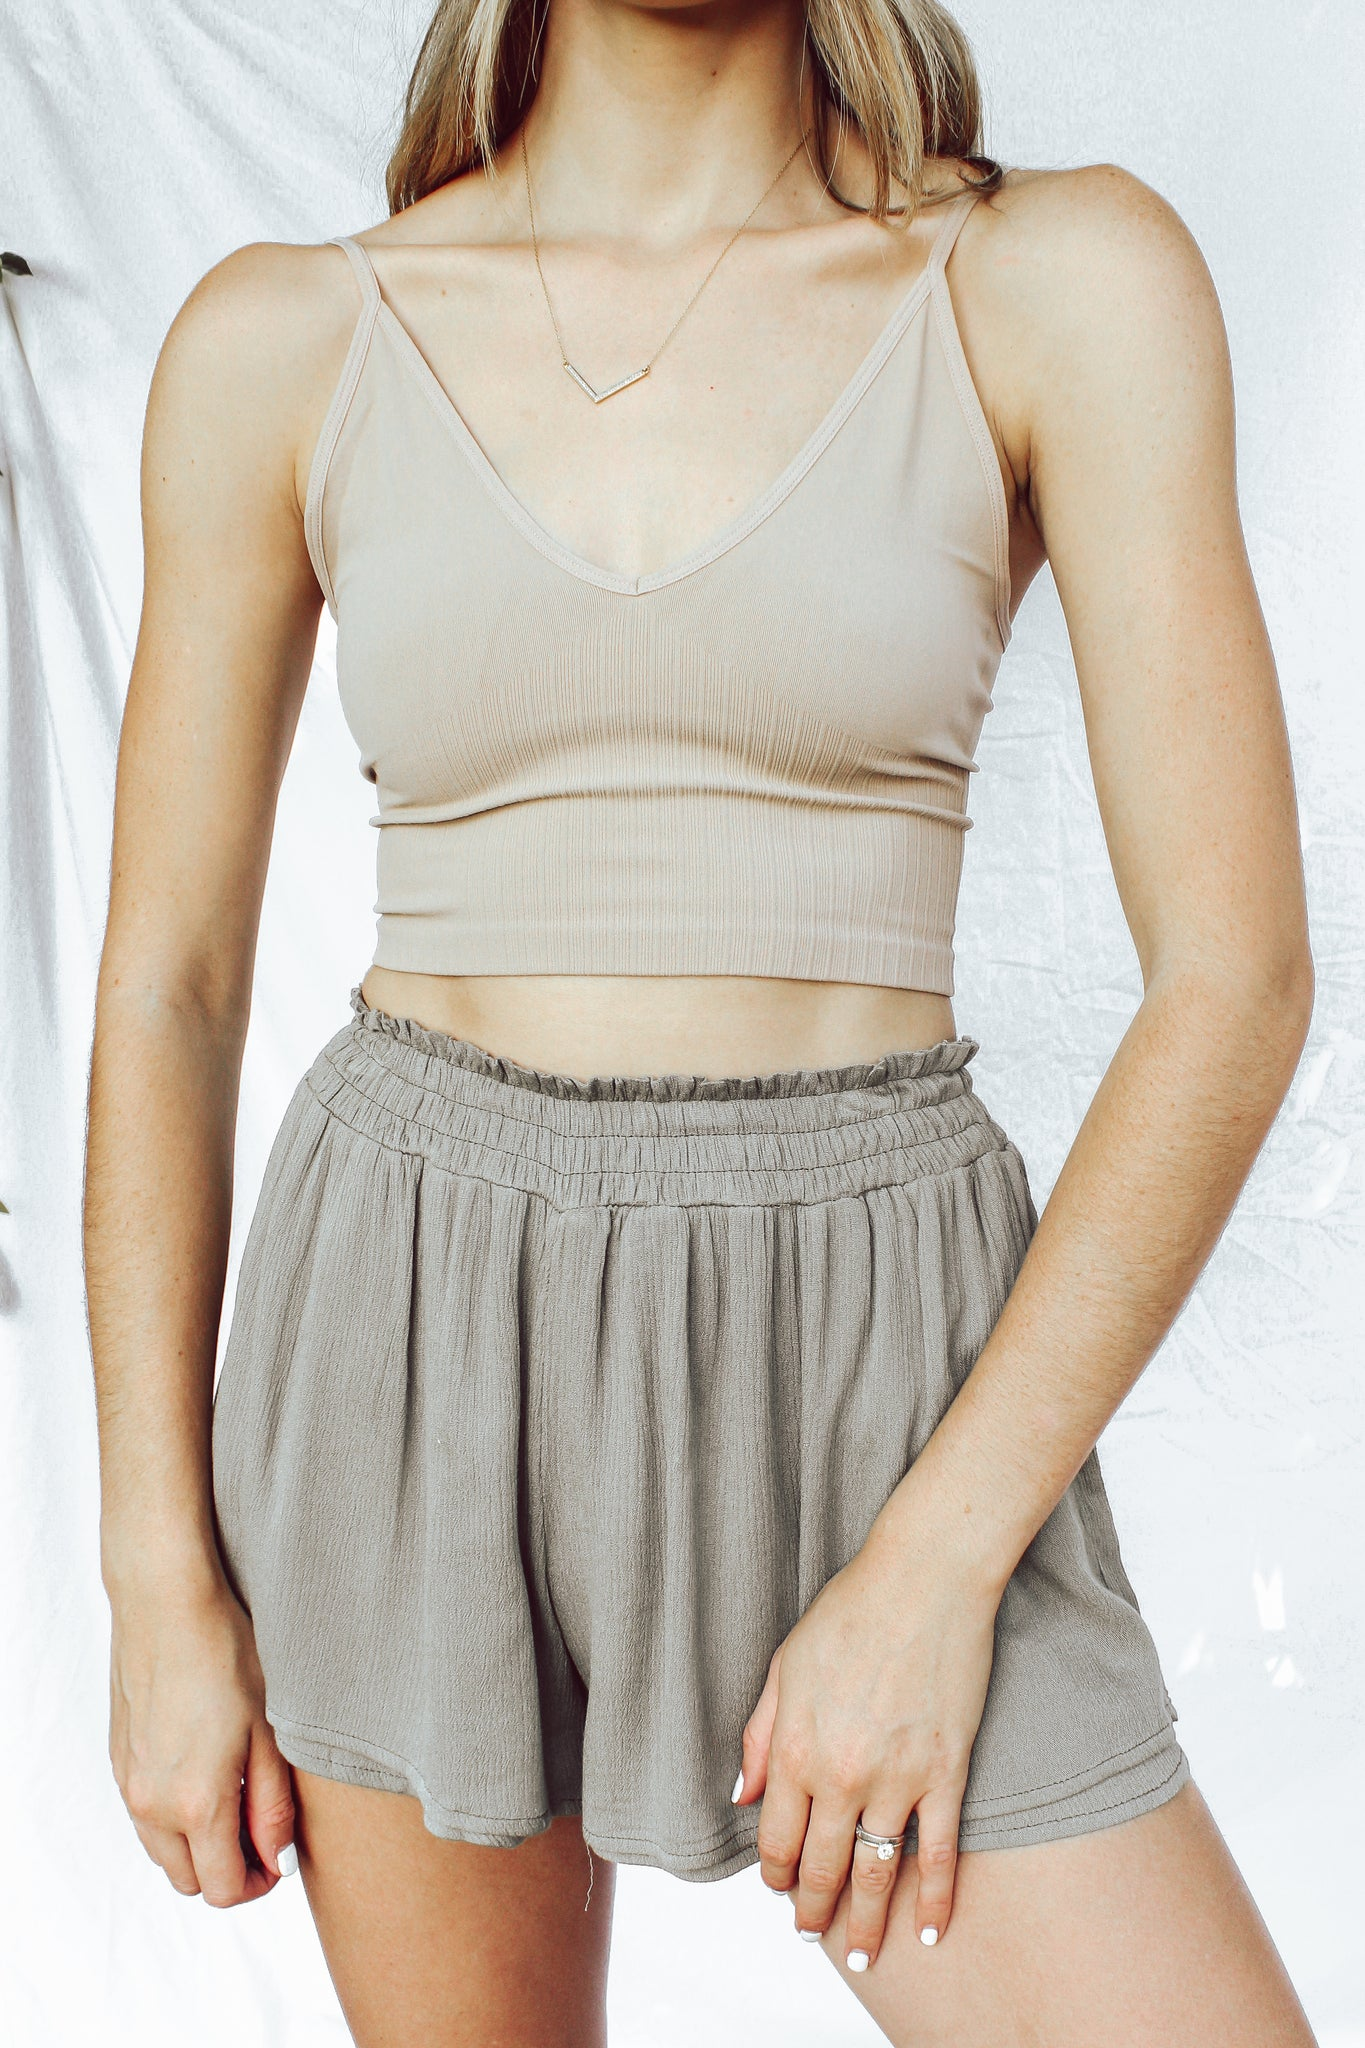 Cami Bra Top in Taupe